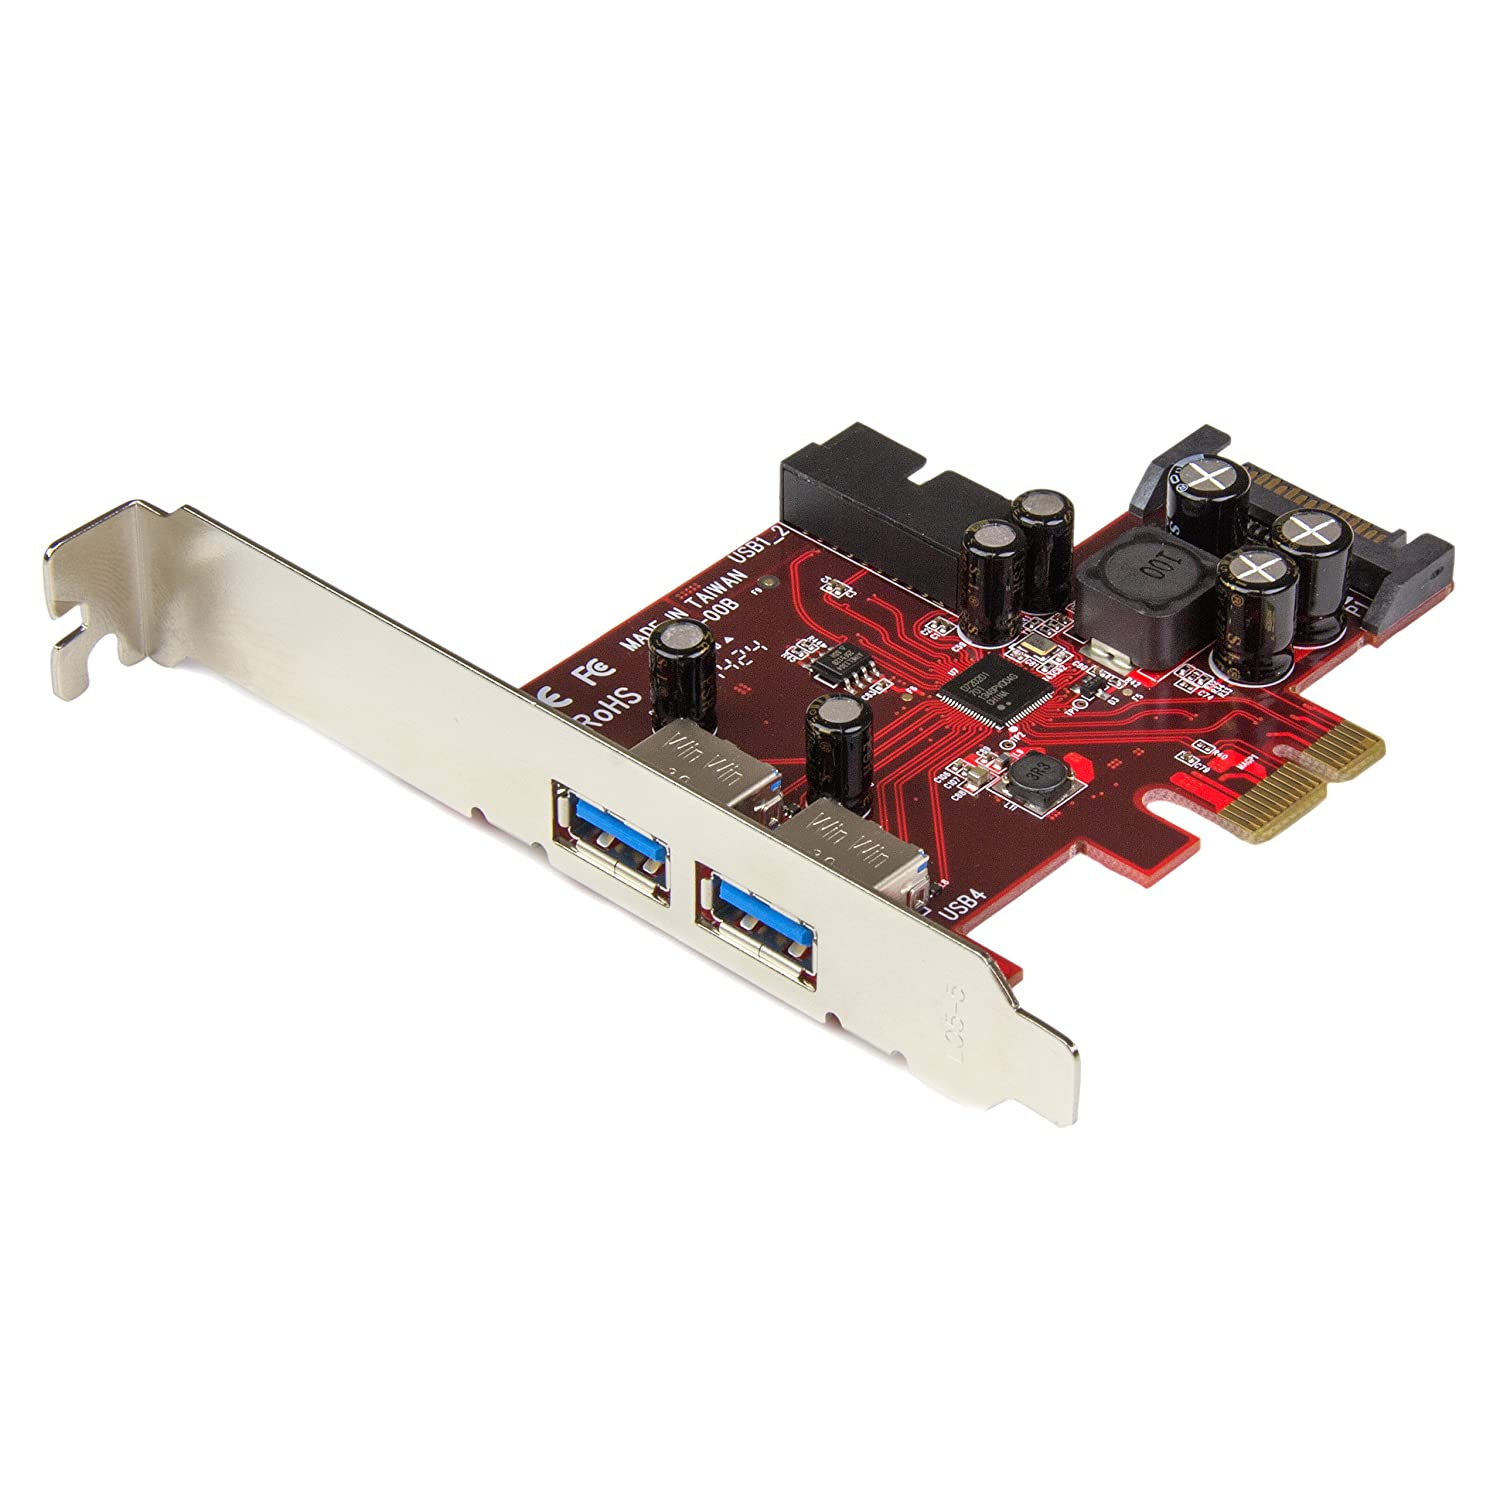 StarTech.com 4 Port PCI SuperSpeed USB 3.0 Adapter Card with SATA/SP4 Power-Quad Port PCI USB 3 Controller Card PCIUSB3S4, Red USB & Firewire Equipment